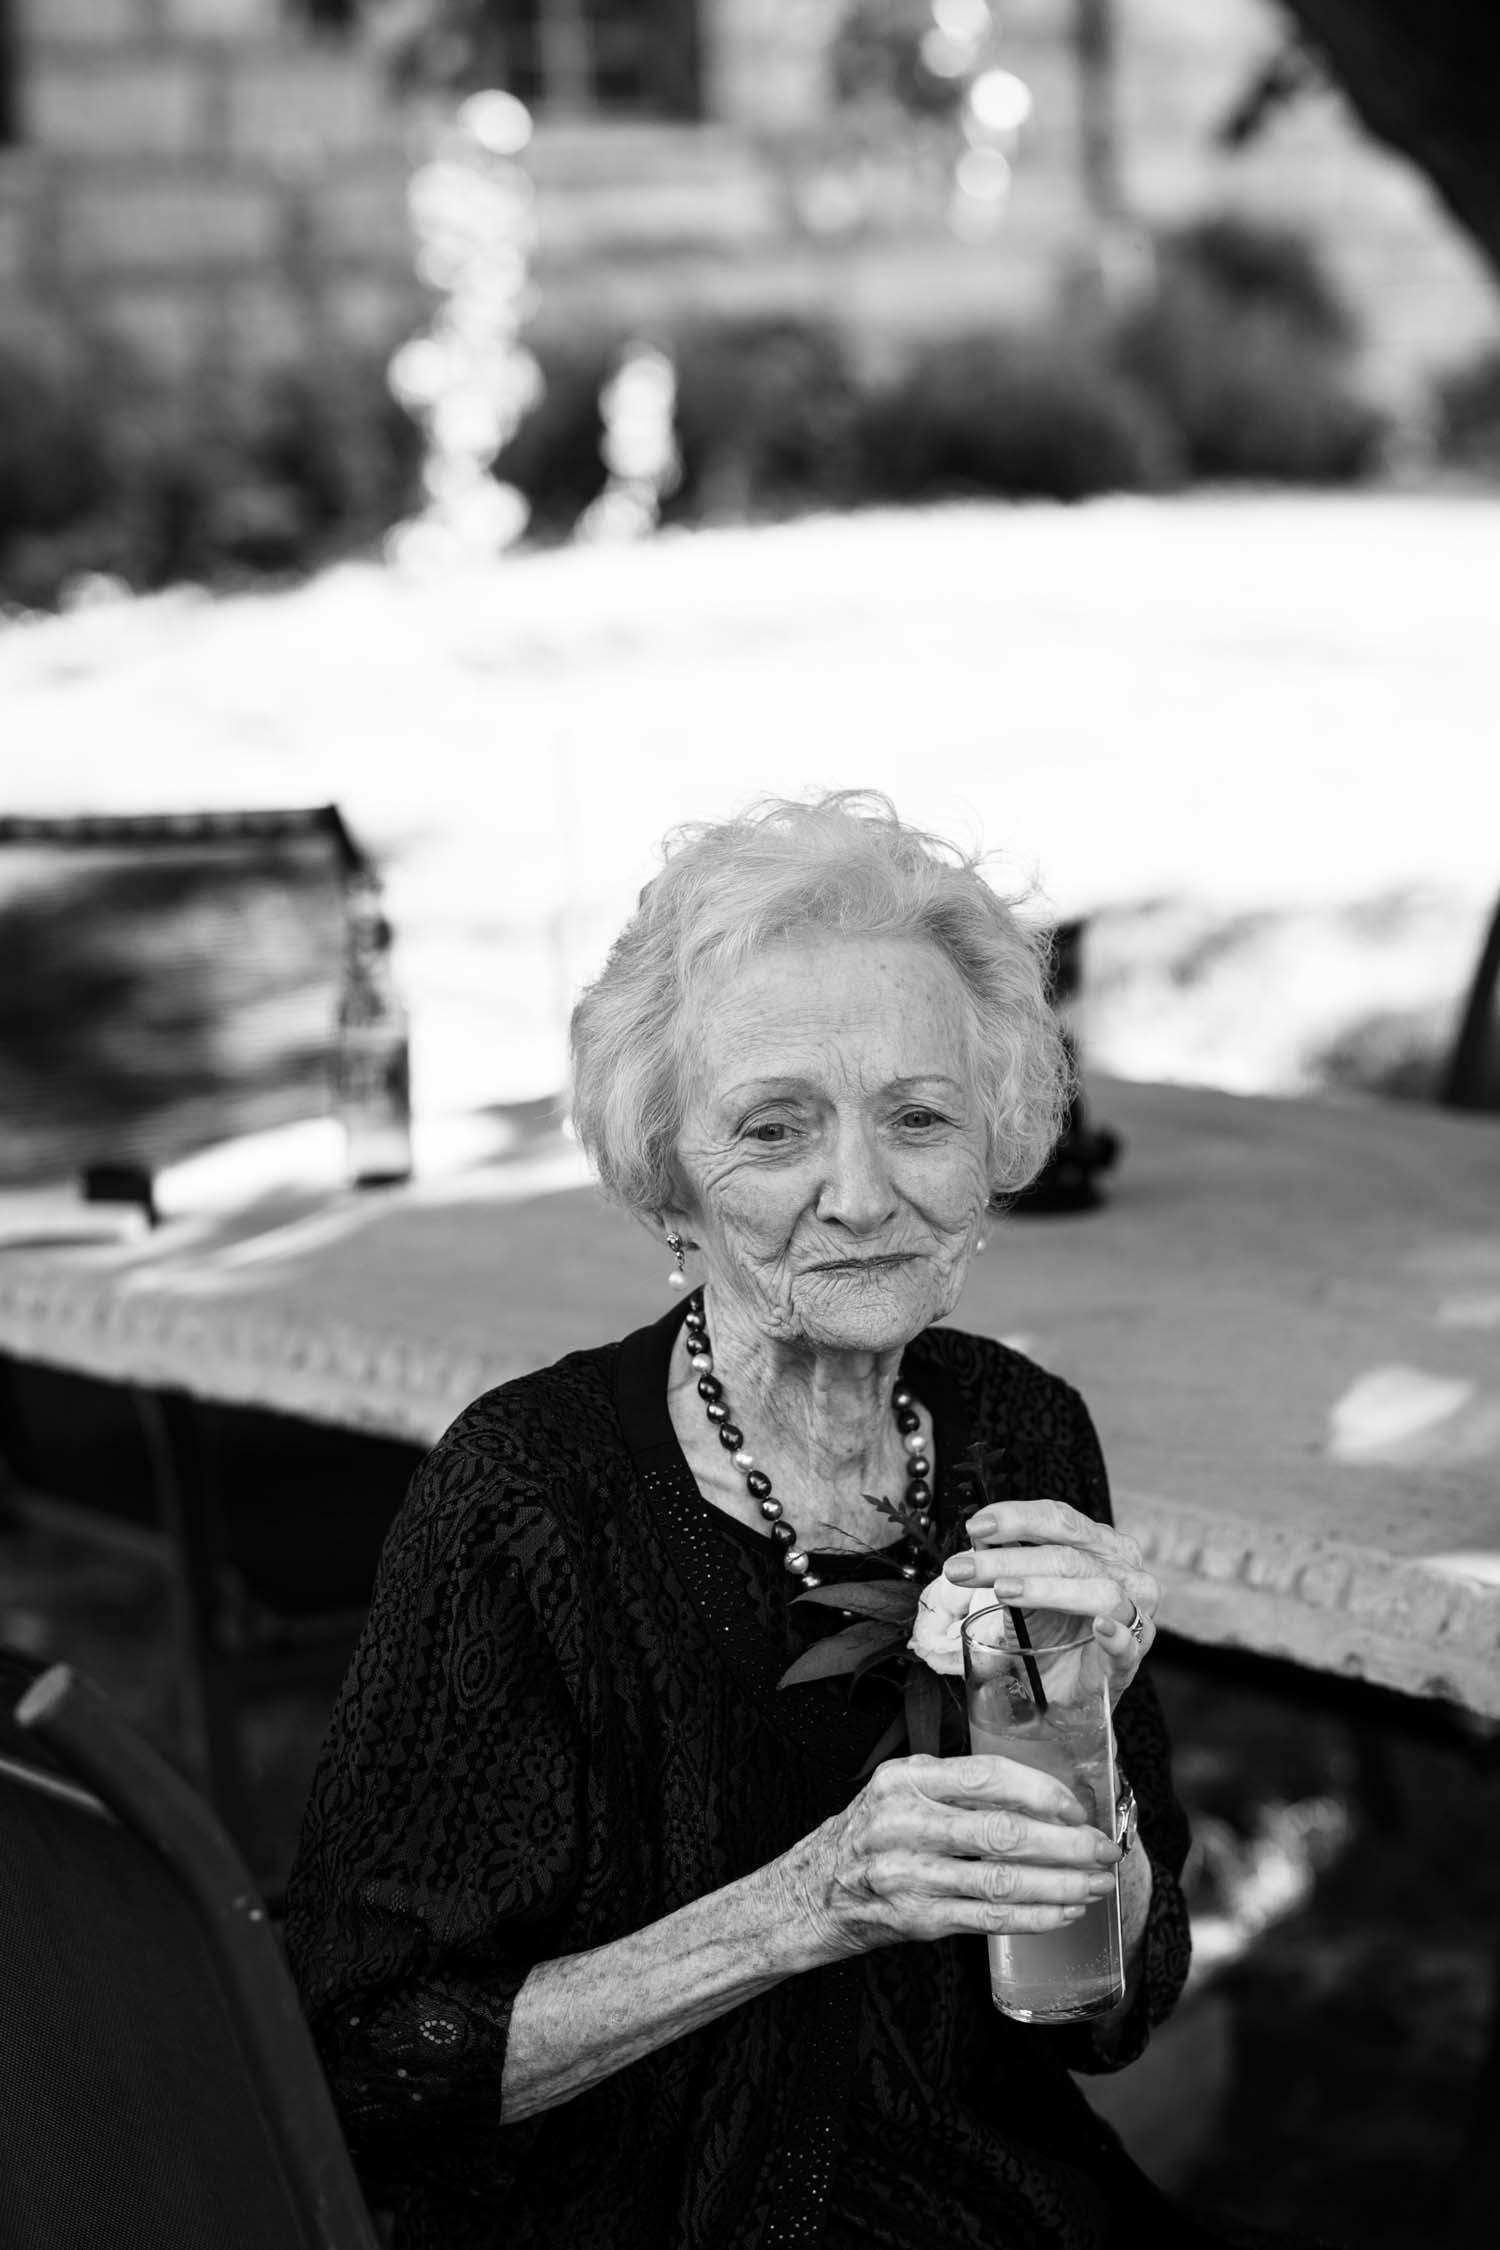 Epic Beautiful Unusual Portrait Of Grandmother During Cocktail Hour At Wedding